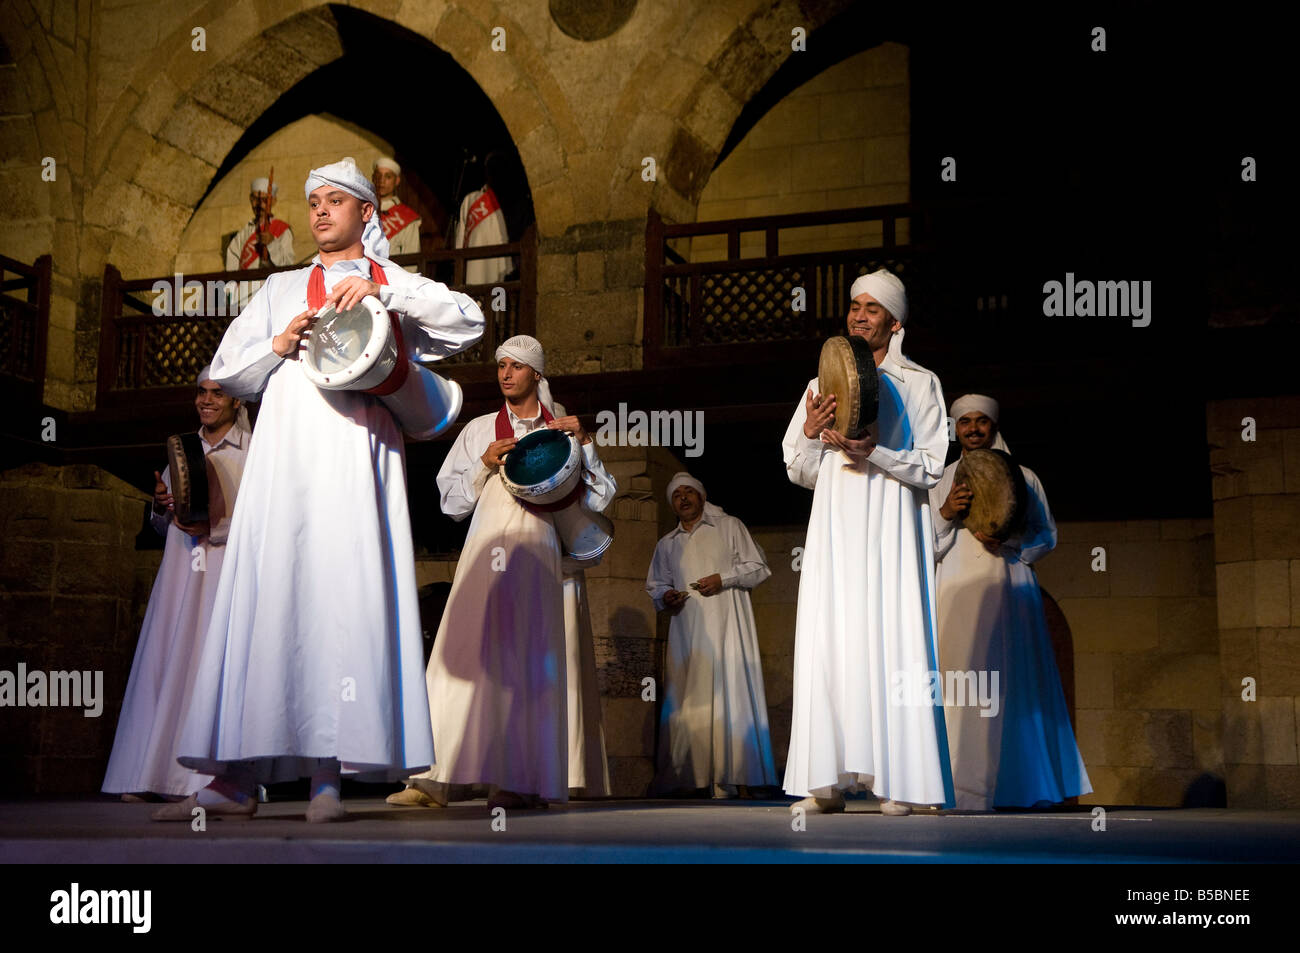 Dervish or Darvish performance of al tannoura Egyptian heritage dance troupe at the Wekalet el Ghouri Arts Center - Stock Image